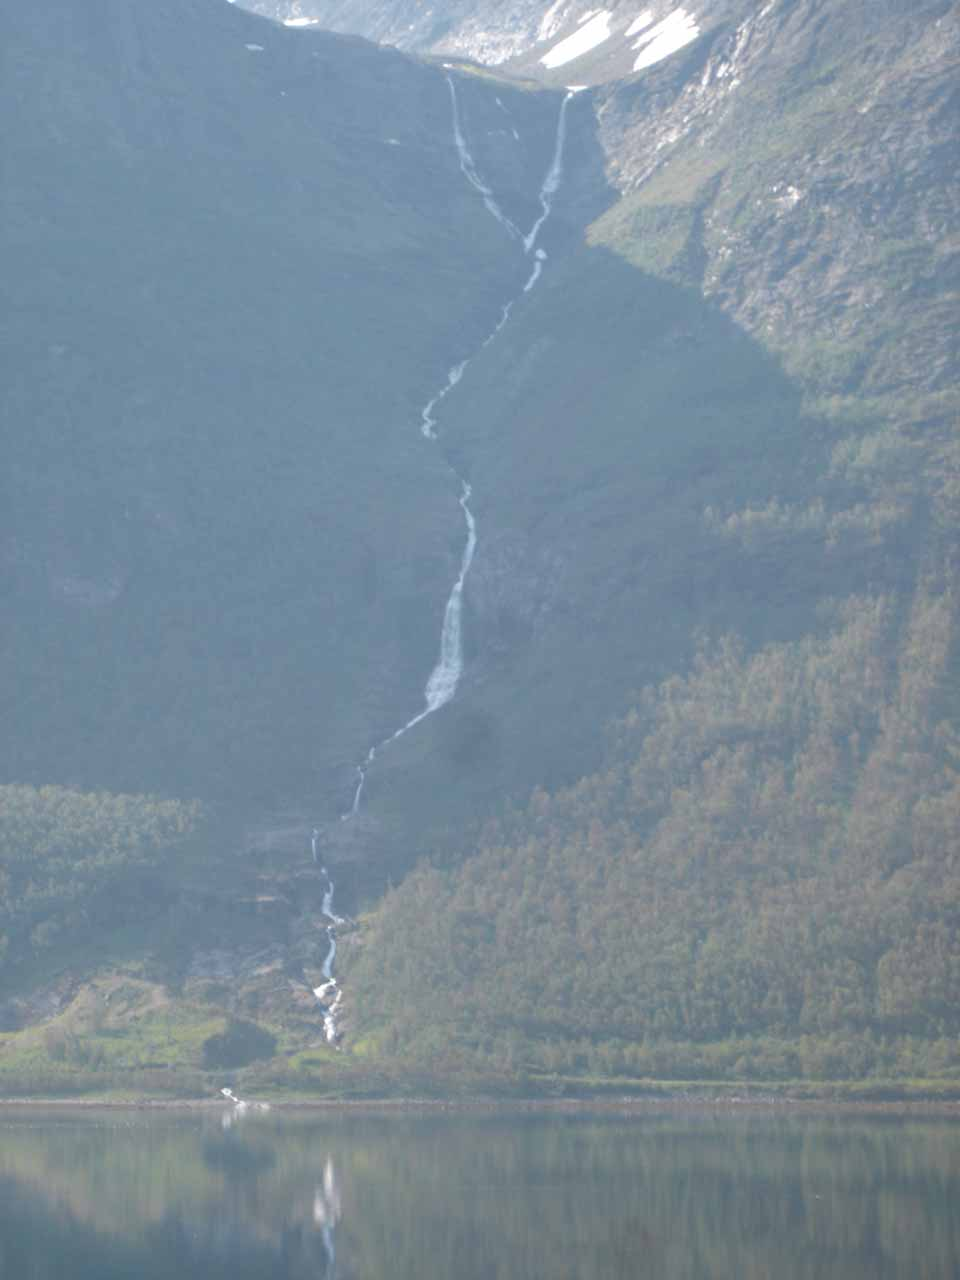 More direct look at what I'm calling Båfossen